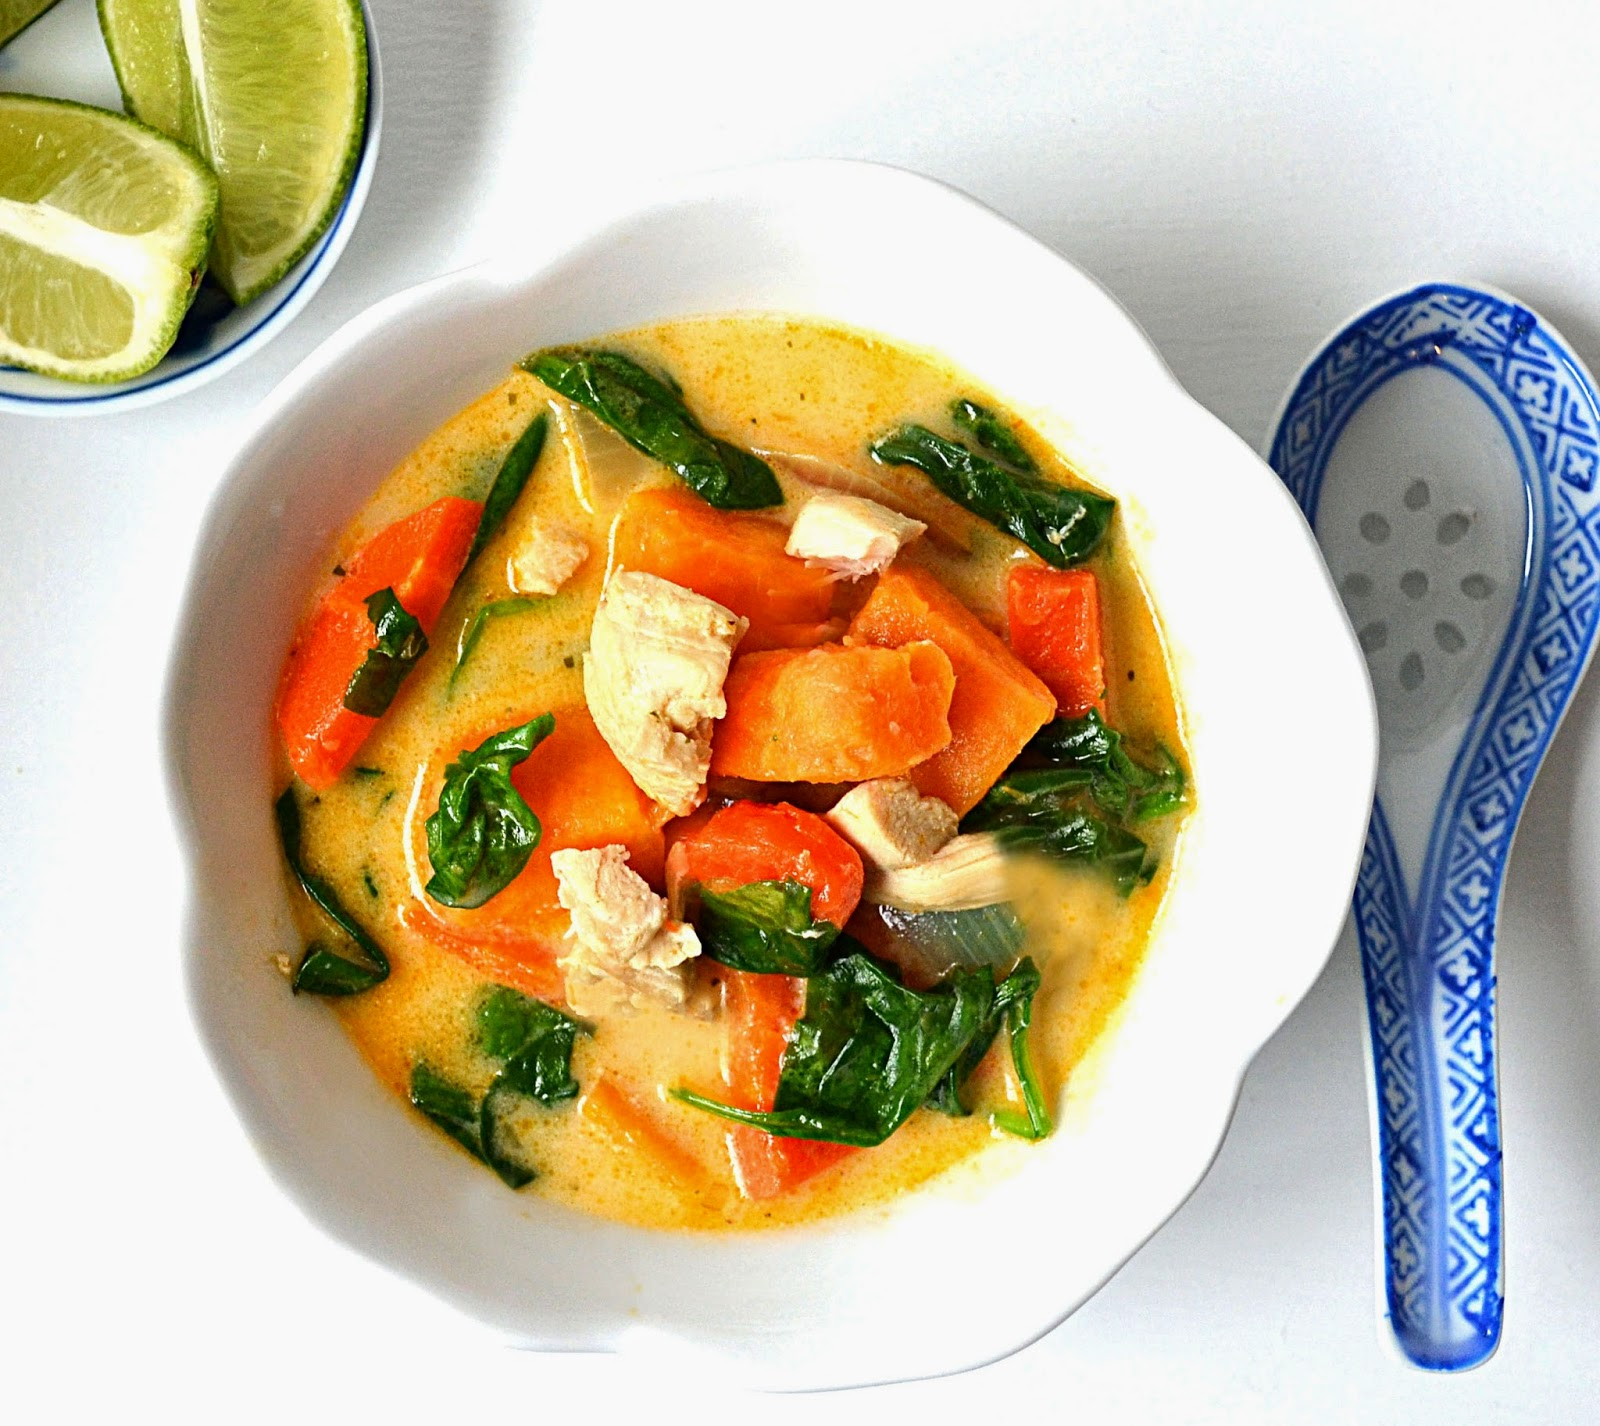 Sew French: Thai Chicken Coconut Soup With Sweet Potatoes